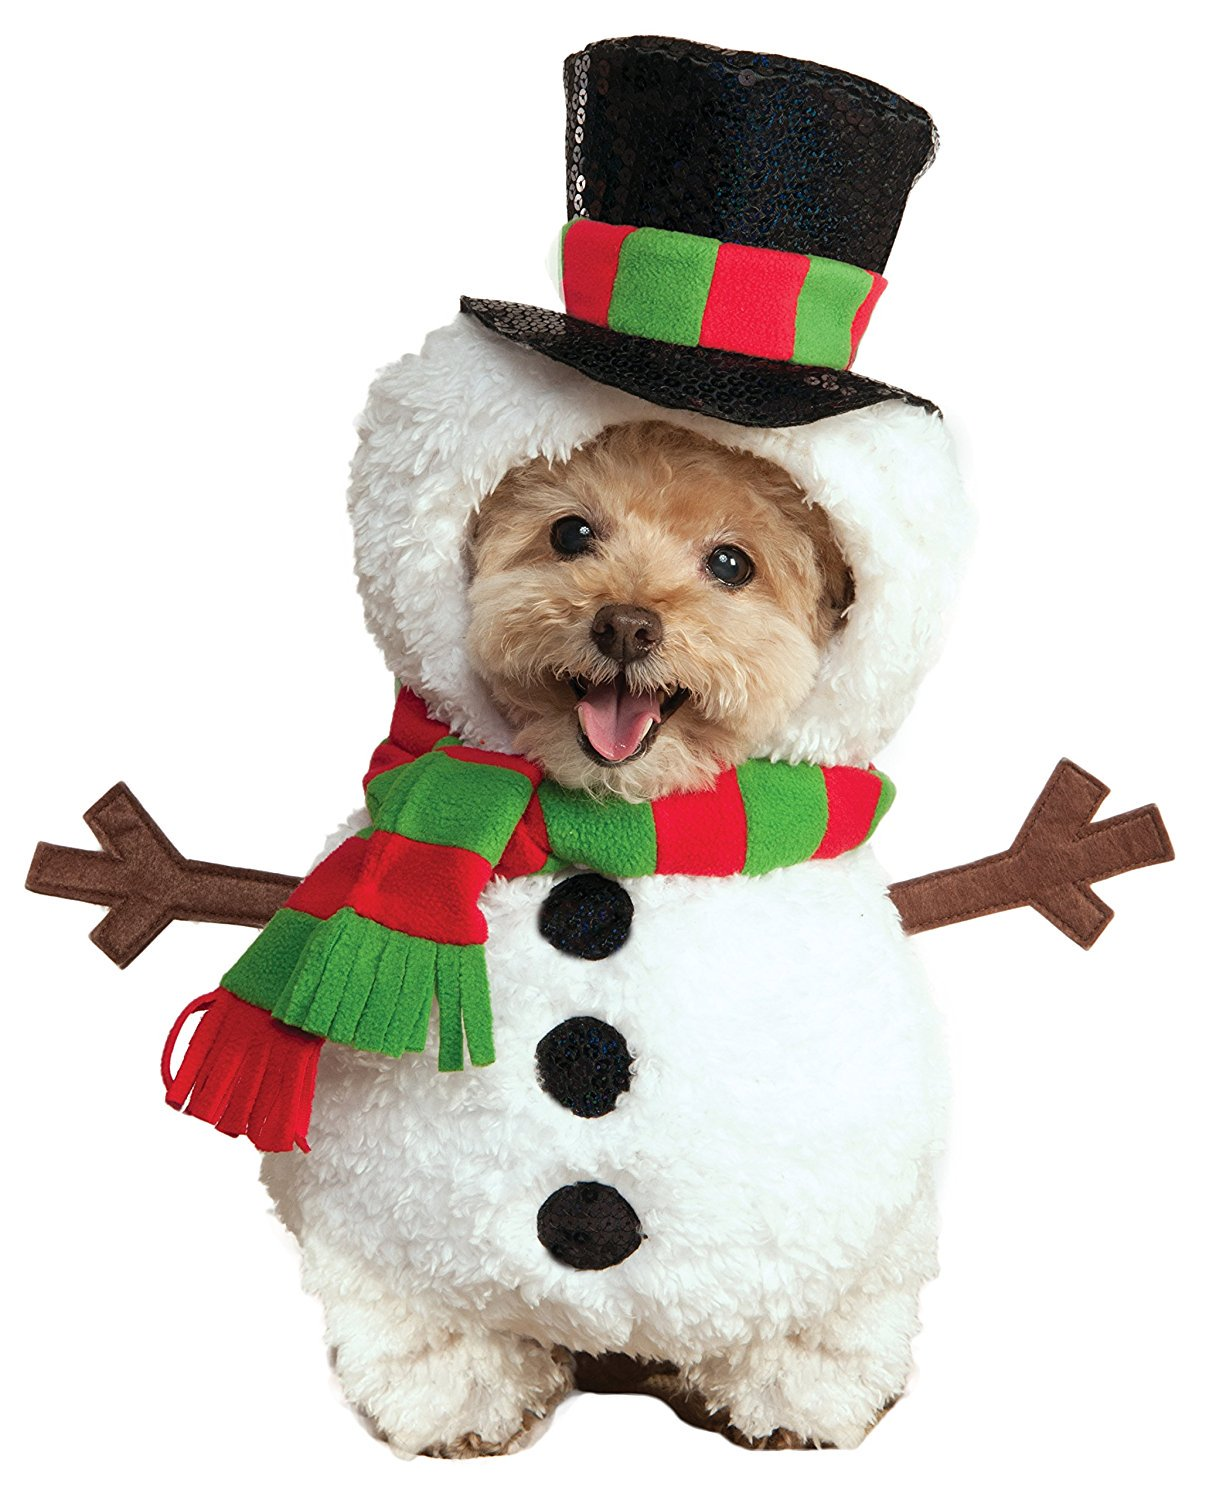 dog clothes 11 best christmas dog outfits to get your dog in the holiday spirit | the IRYMDUK